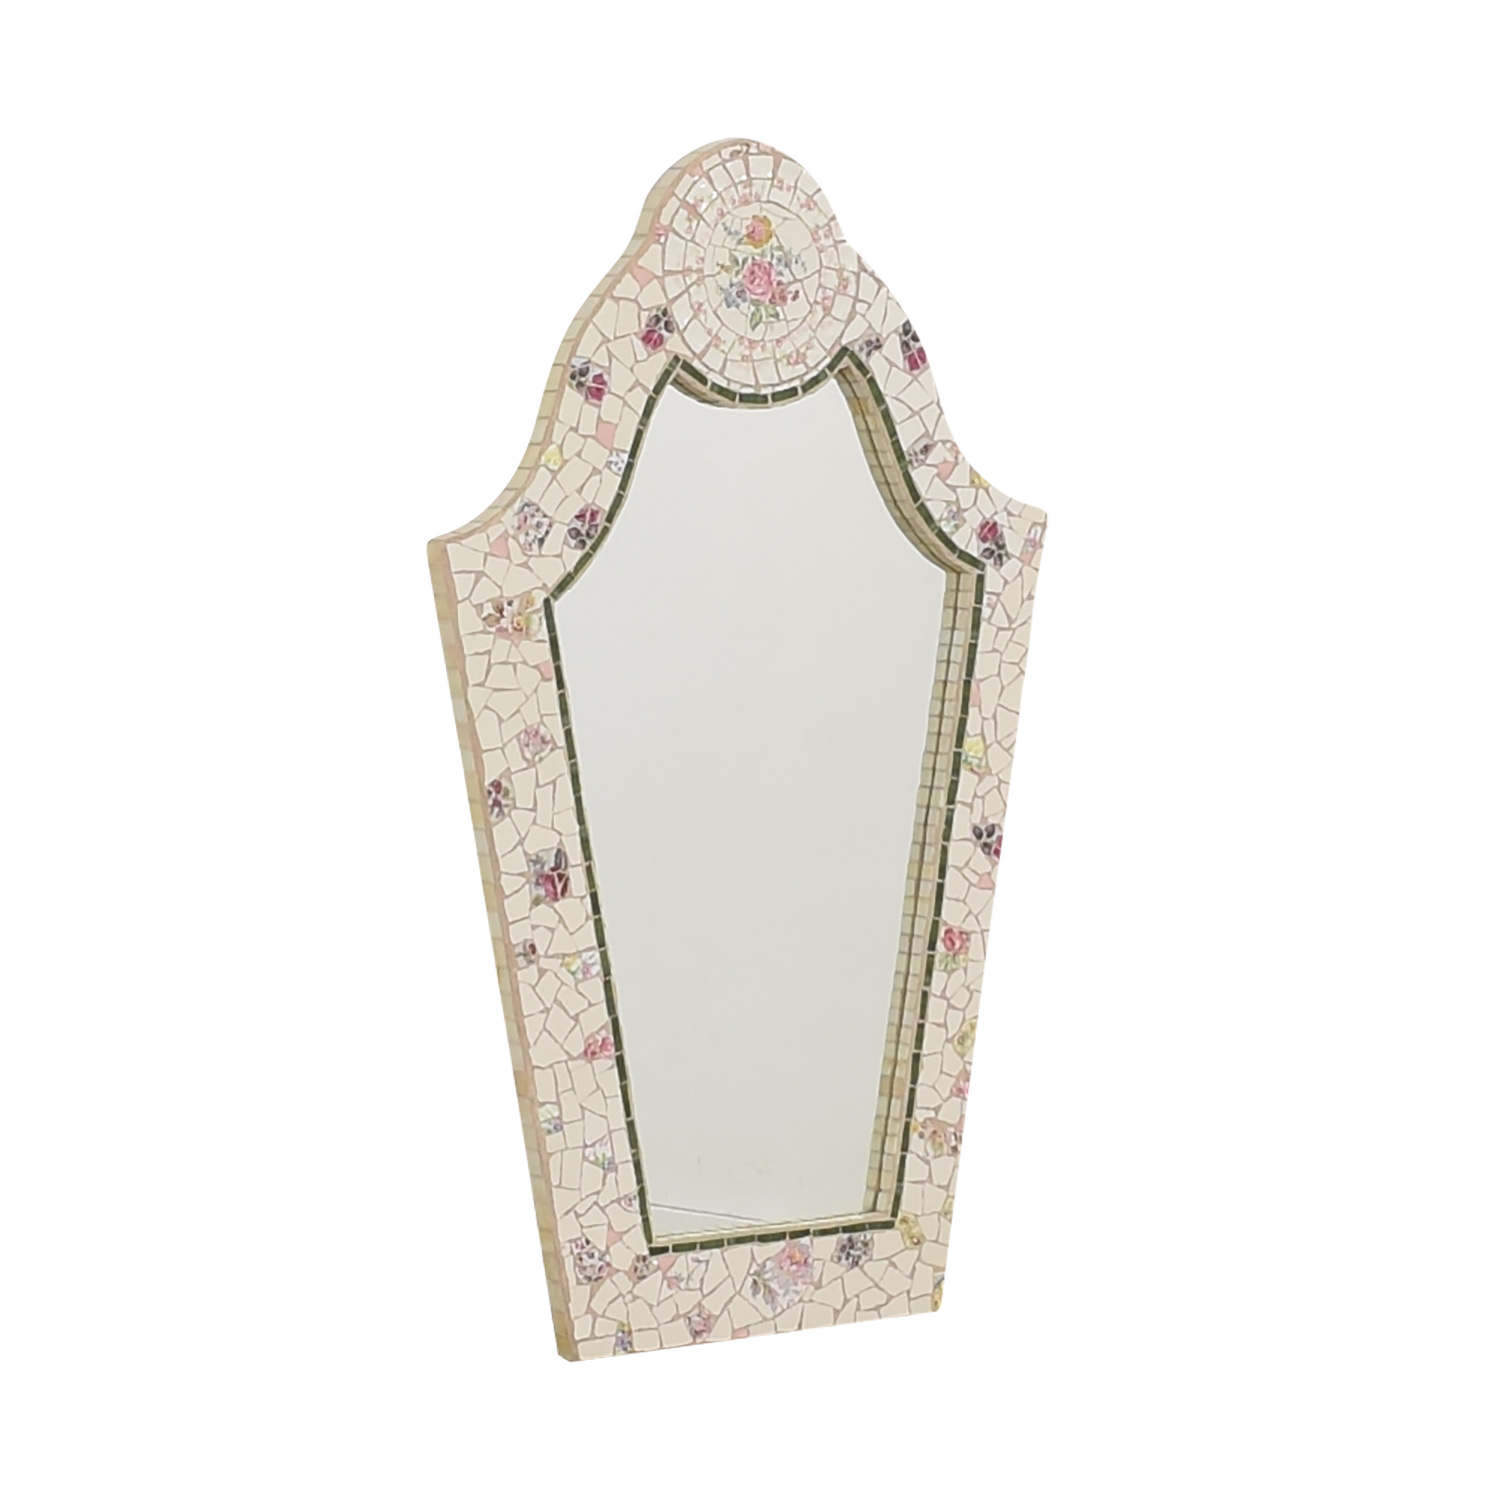 Mosaic Tile Mirror second hand